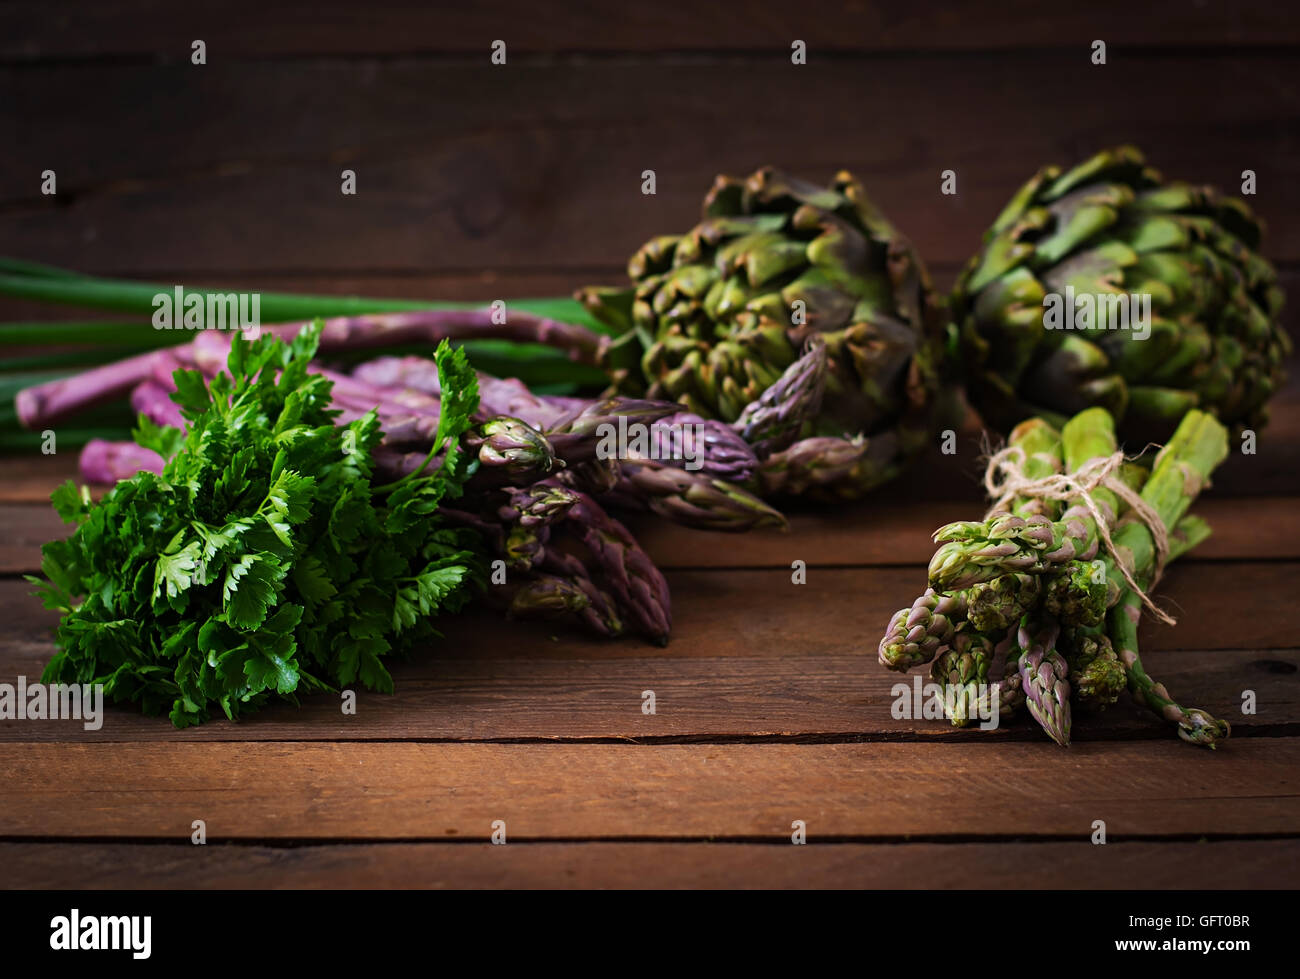 Asparagus and artichokes with herbs on a wooden background - Stock Image